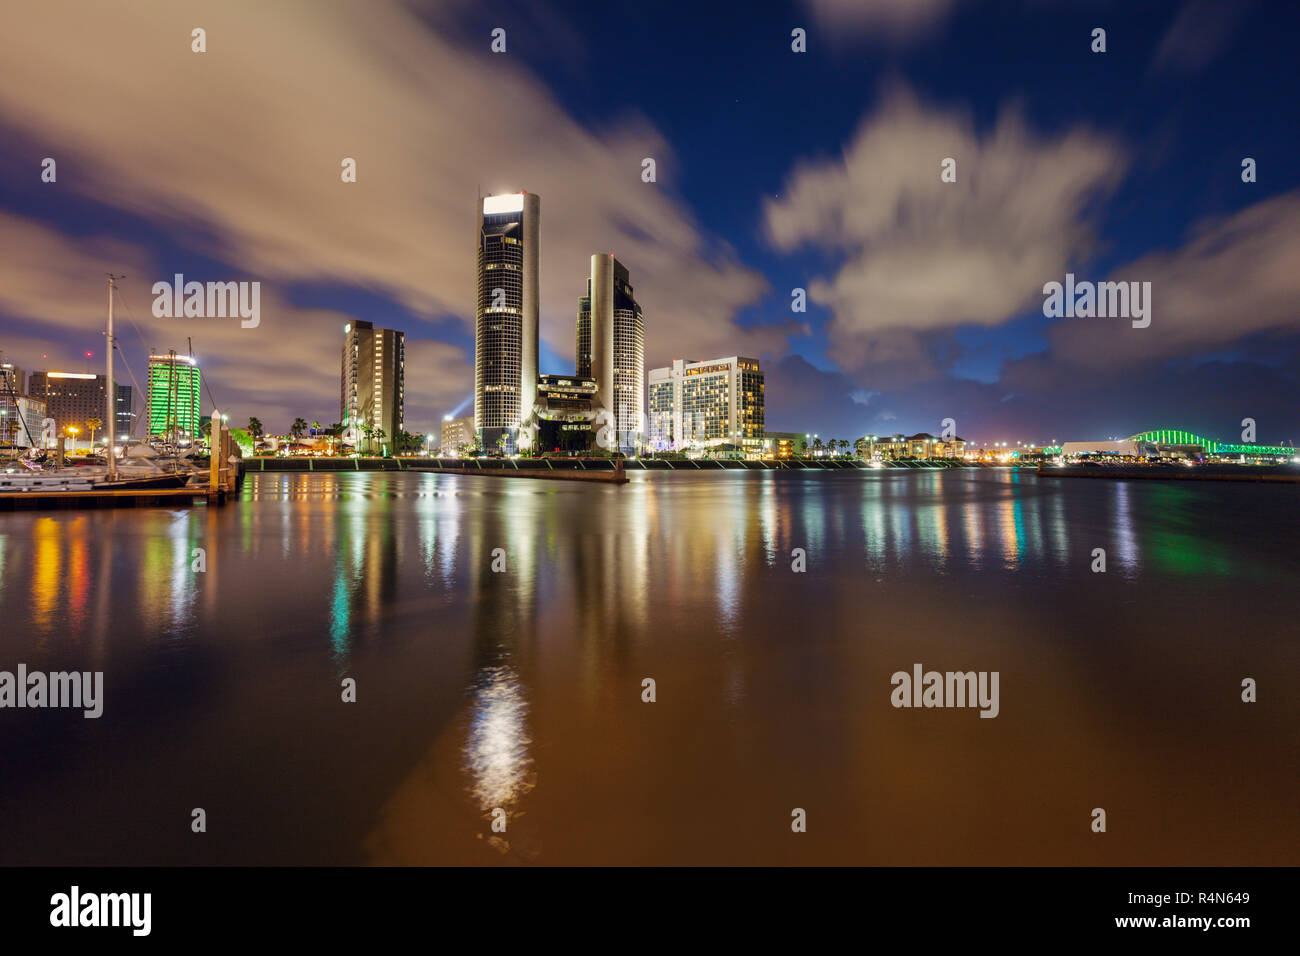 Harbor and cityscape of Corpus Christi at night in Texas - Stock Image